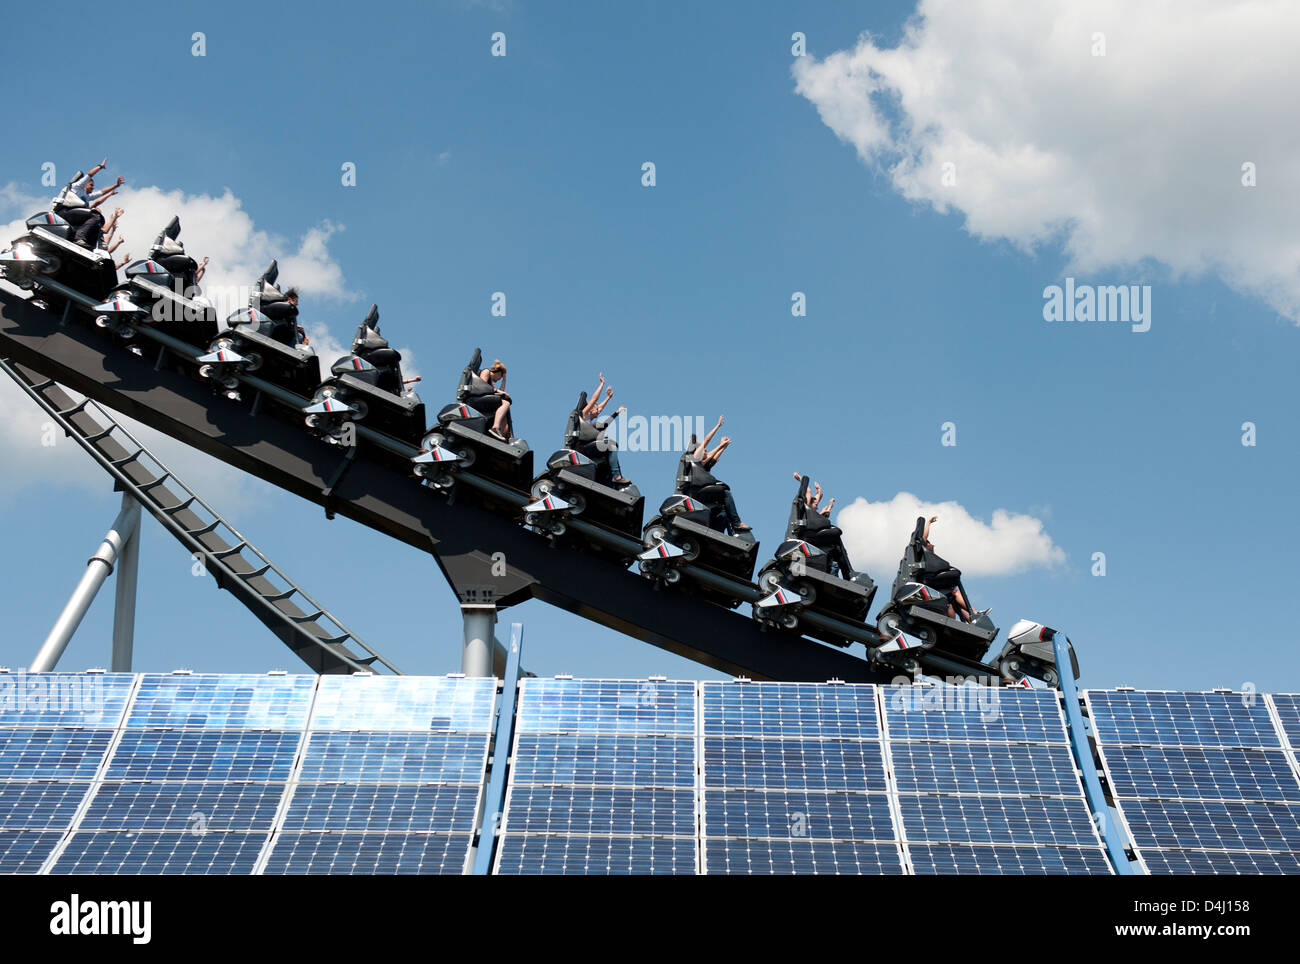 Rusr, Germany, the Silver Star at Europa-Park Rust - Stock Image